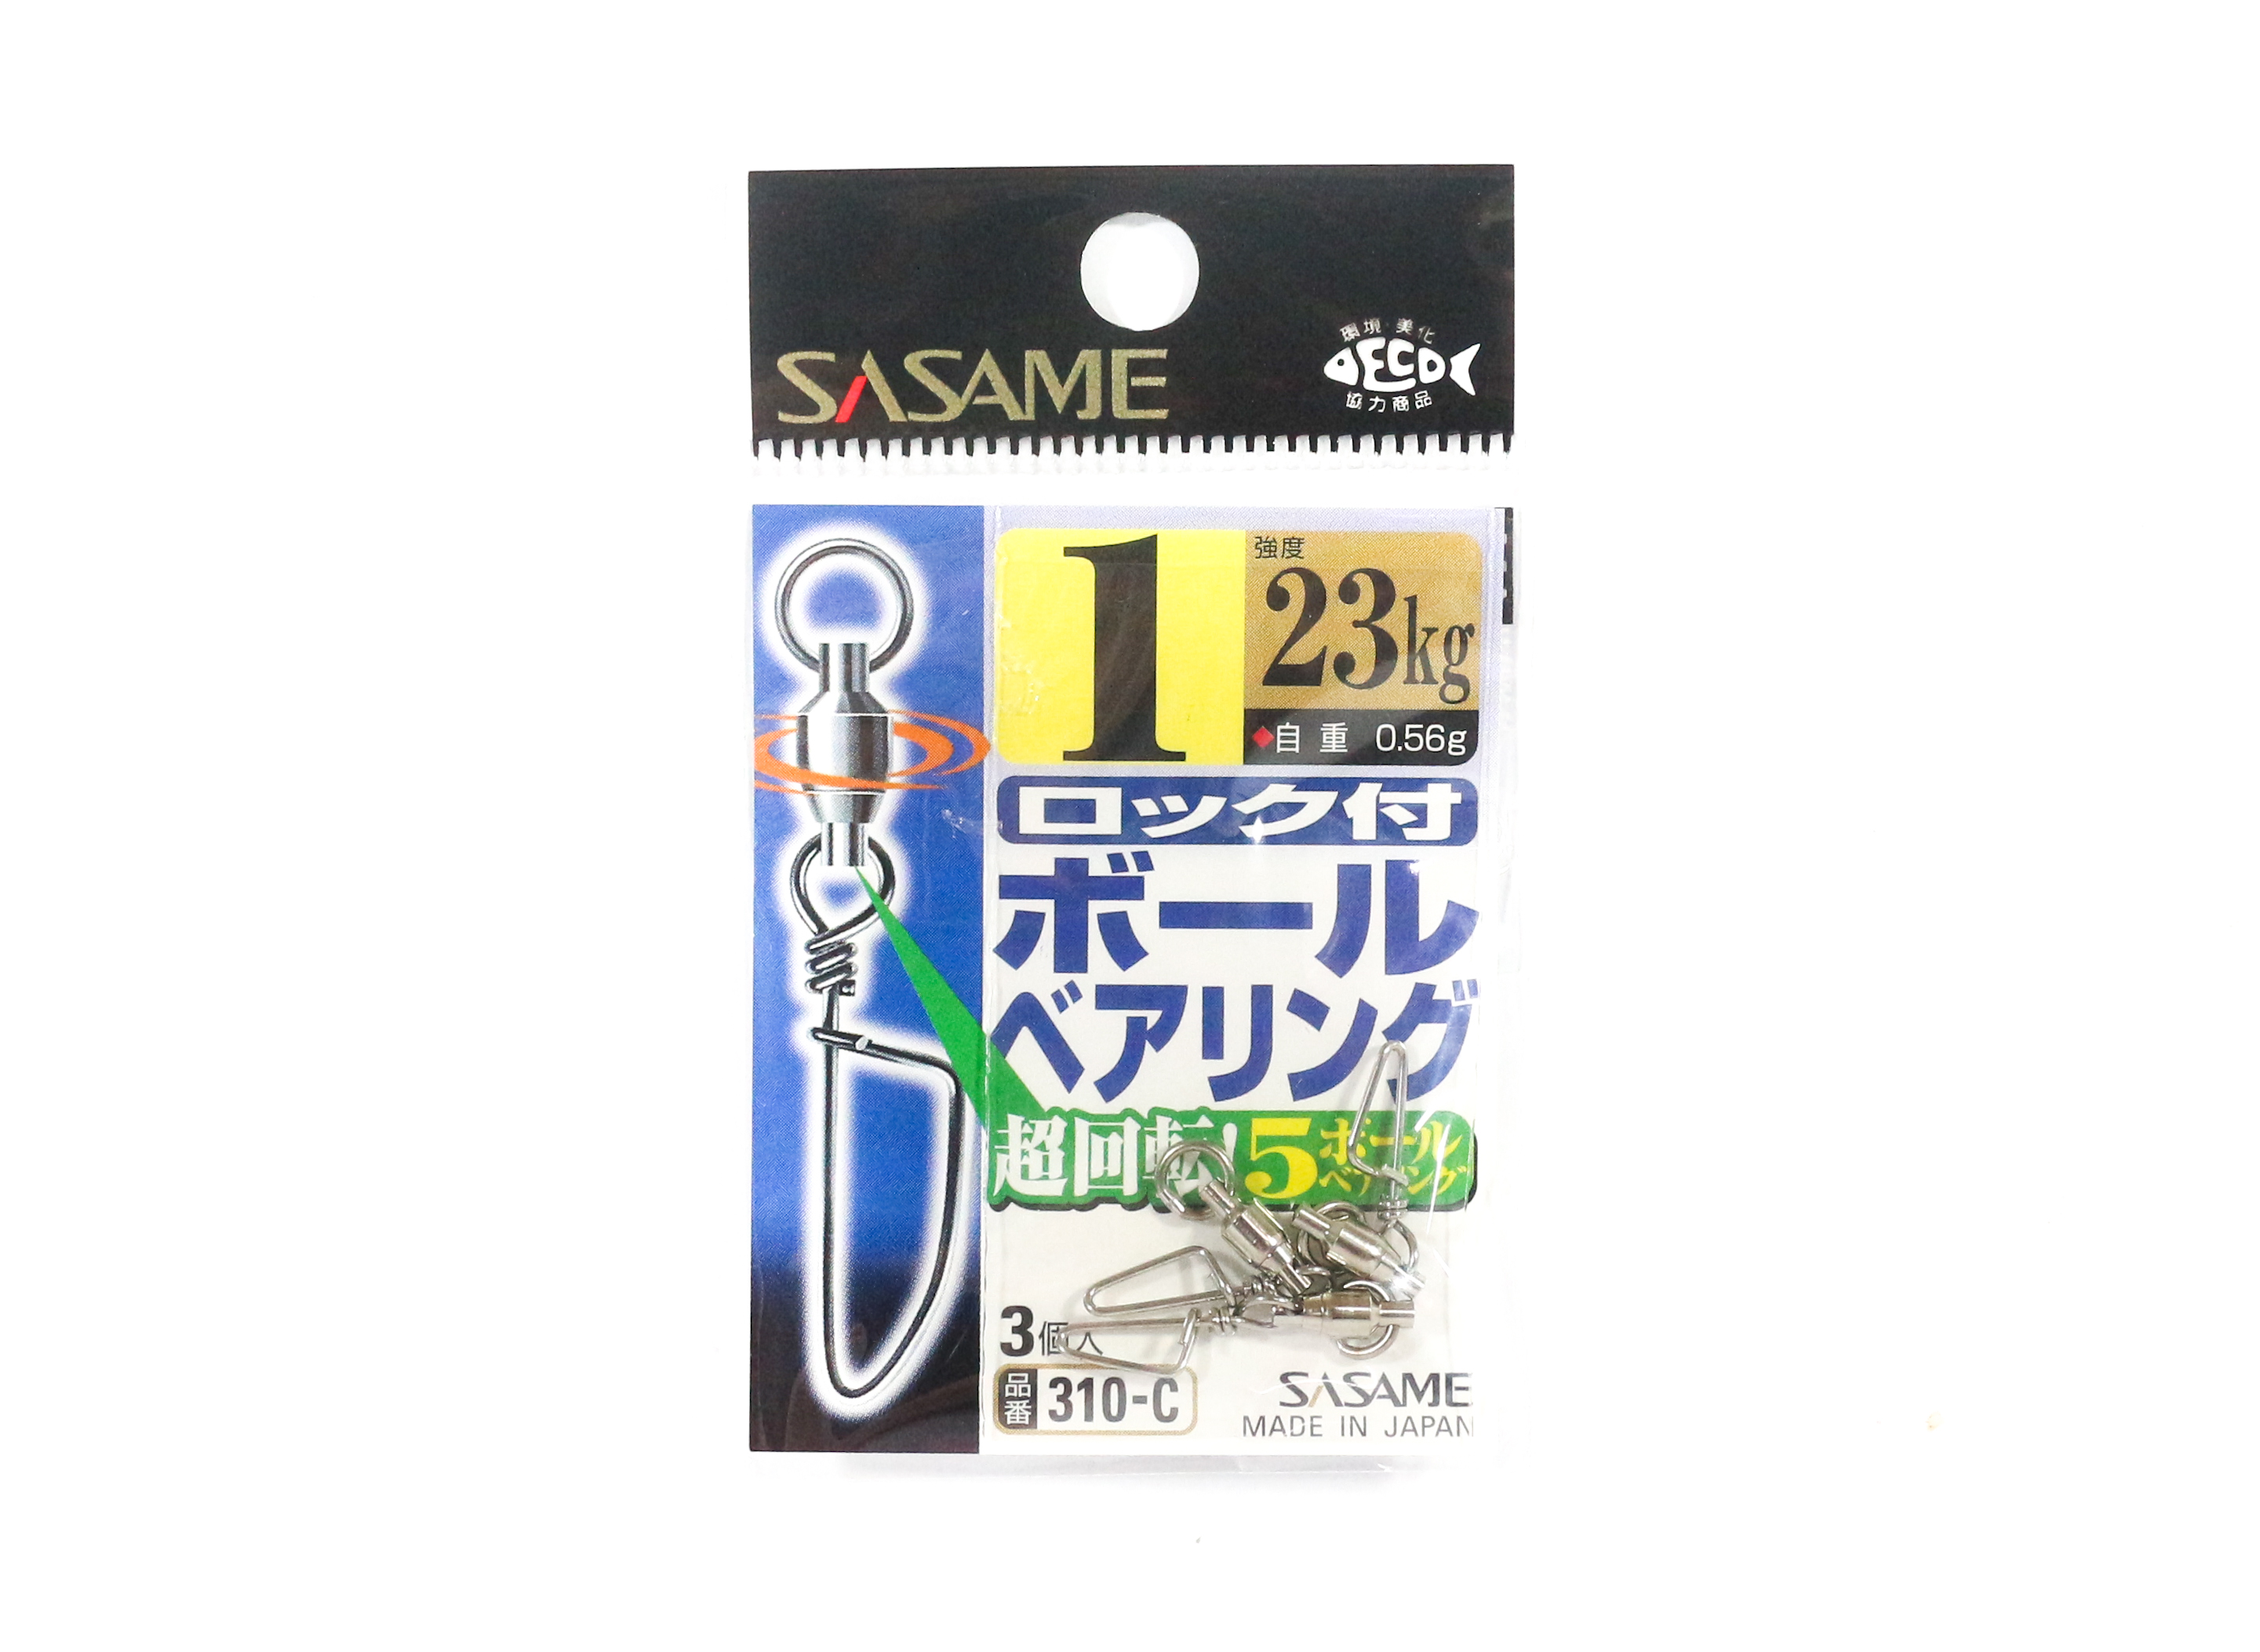 Sasame 310-C Ball Bearing Snap Swivels High Quality Size 1 (1744)